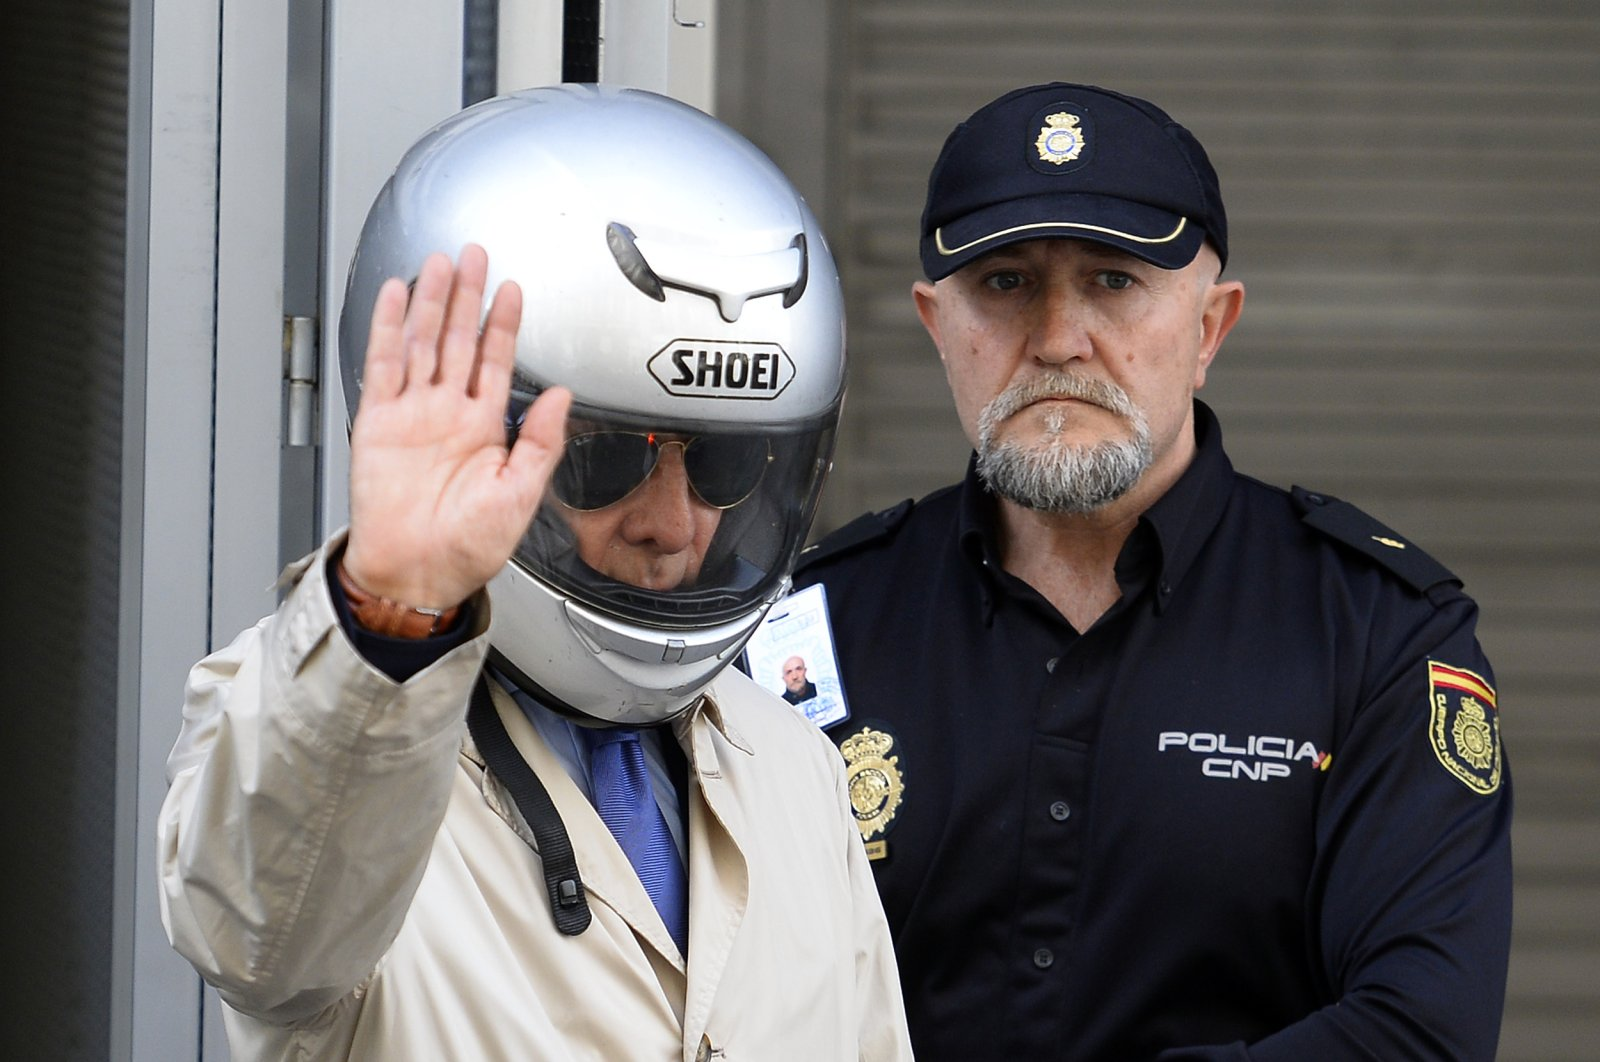 """Former Franco officer Juan Antonio Gonzalez Pacheco, alias """"Billy el Nino"""" (Billy the Kid), leaves the Spanish National Court after his extradition hearing, Madrid, April 10, 2014. (AFP Photo)"""